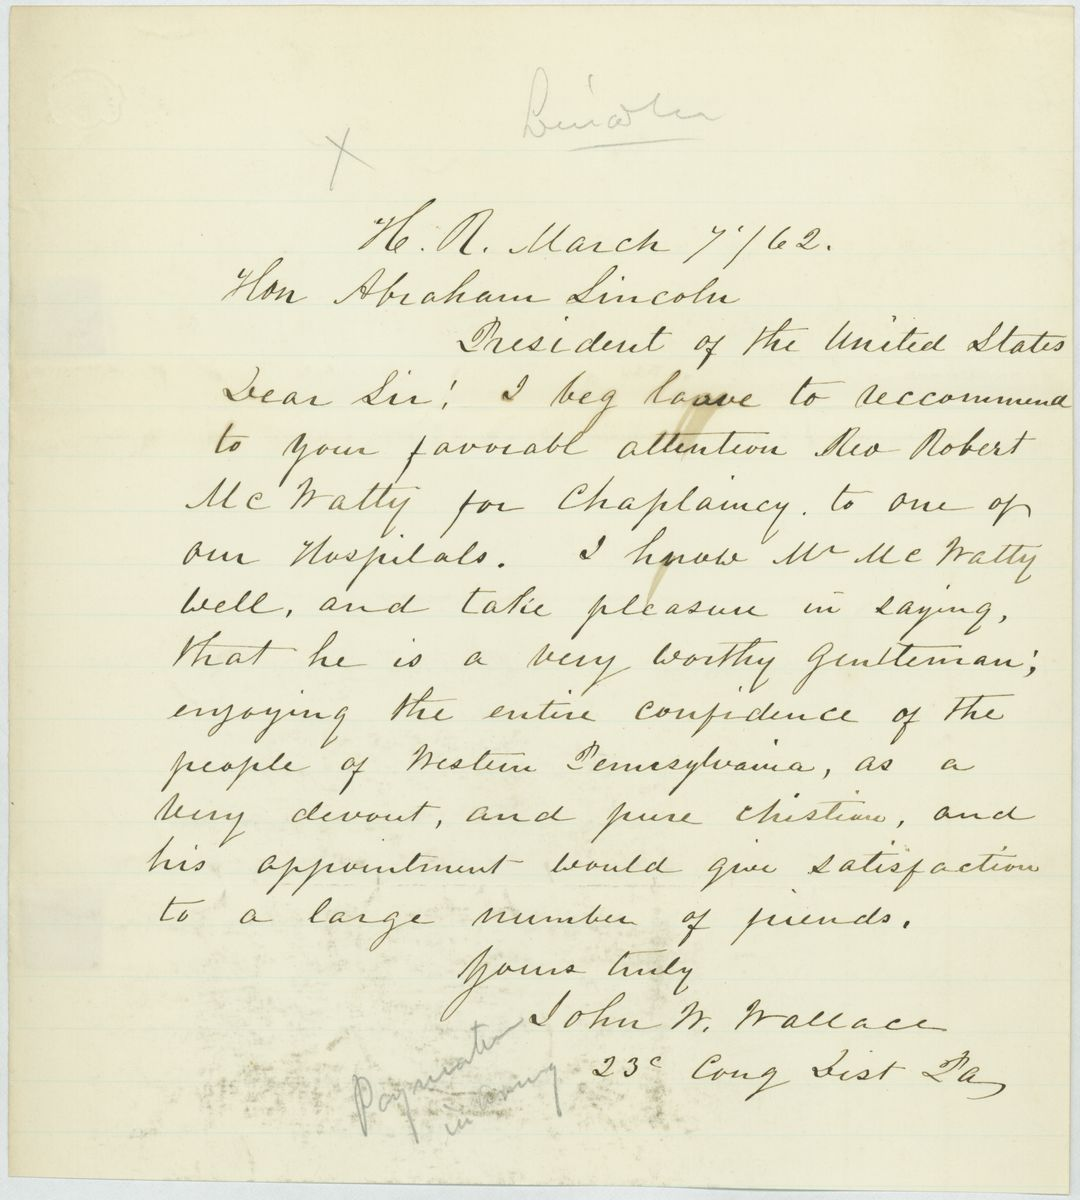 Image: Letter from John W. Wallace to Abraham Lincoln